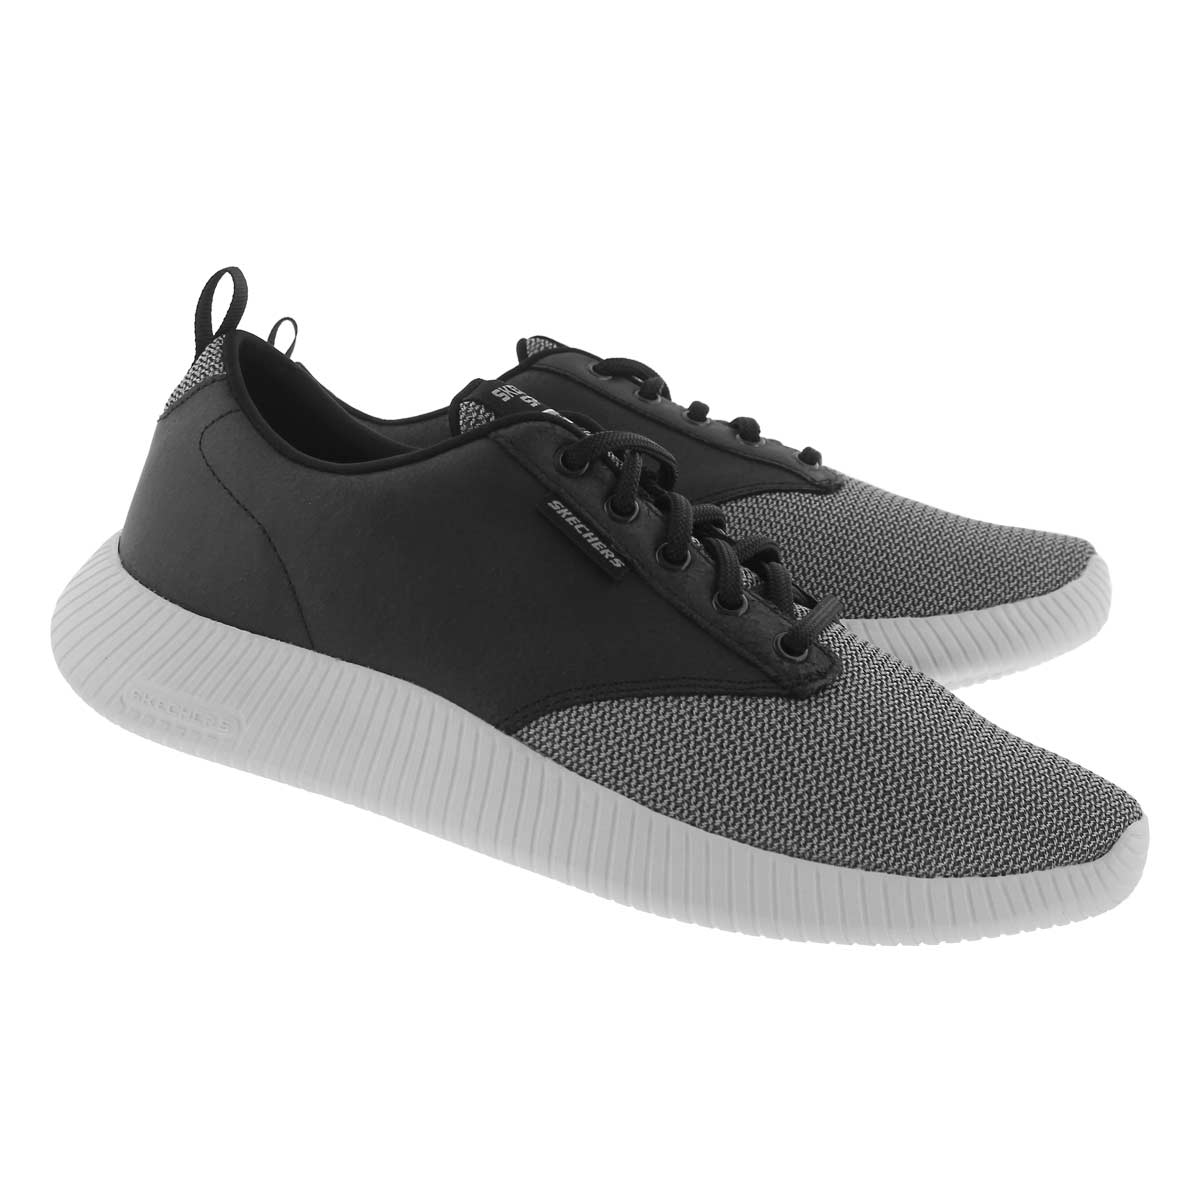 Mns Depth Charge Trahan blk/gry sneaker